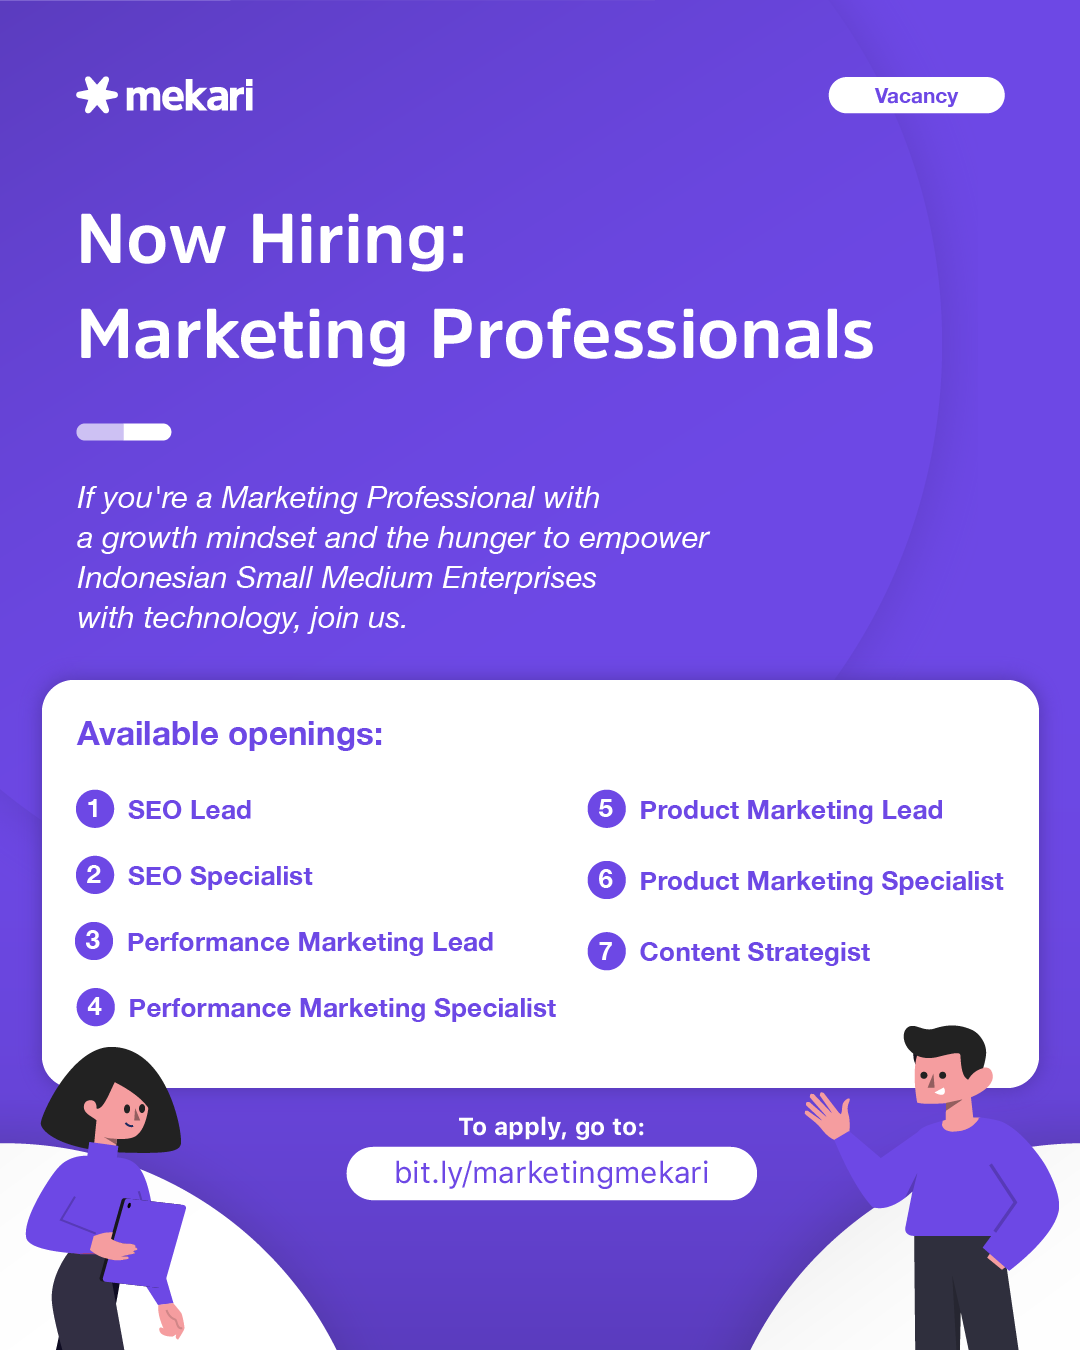 Job opening poster for several Marketing roles. you can apply here: bit.ly/marketingmekari